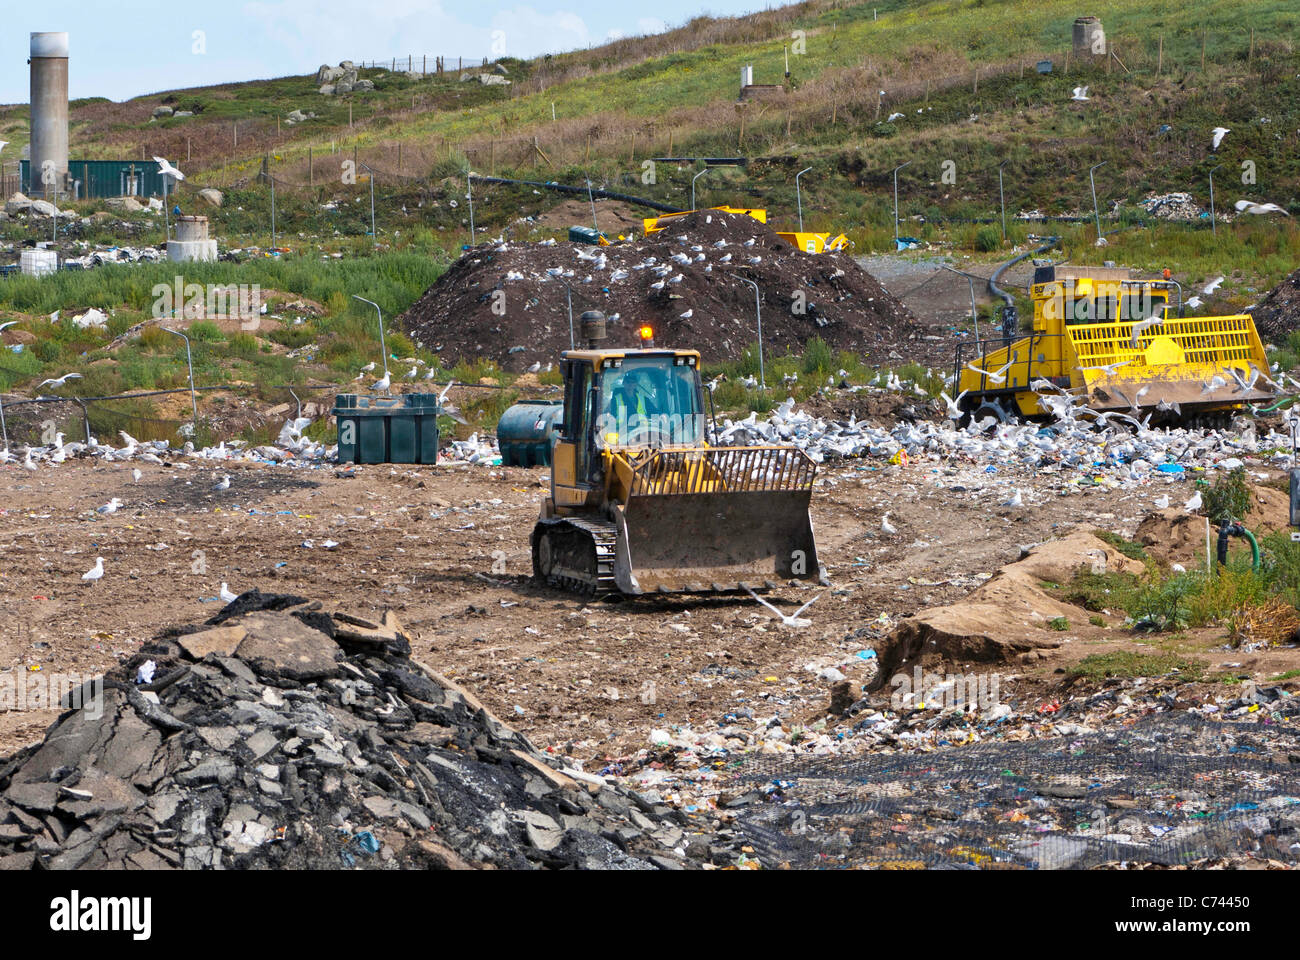 Bulldozer working in landfill site and seagulls with methane gas burner in the background. - Stock Image